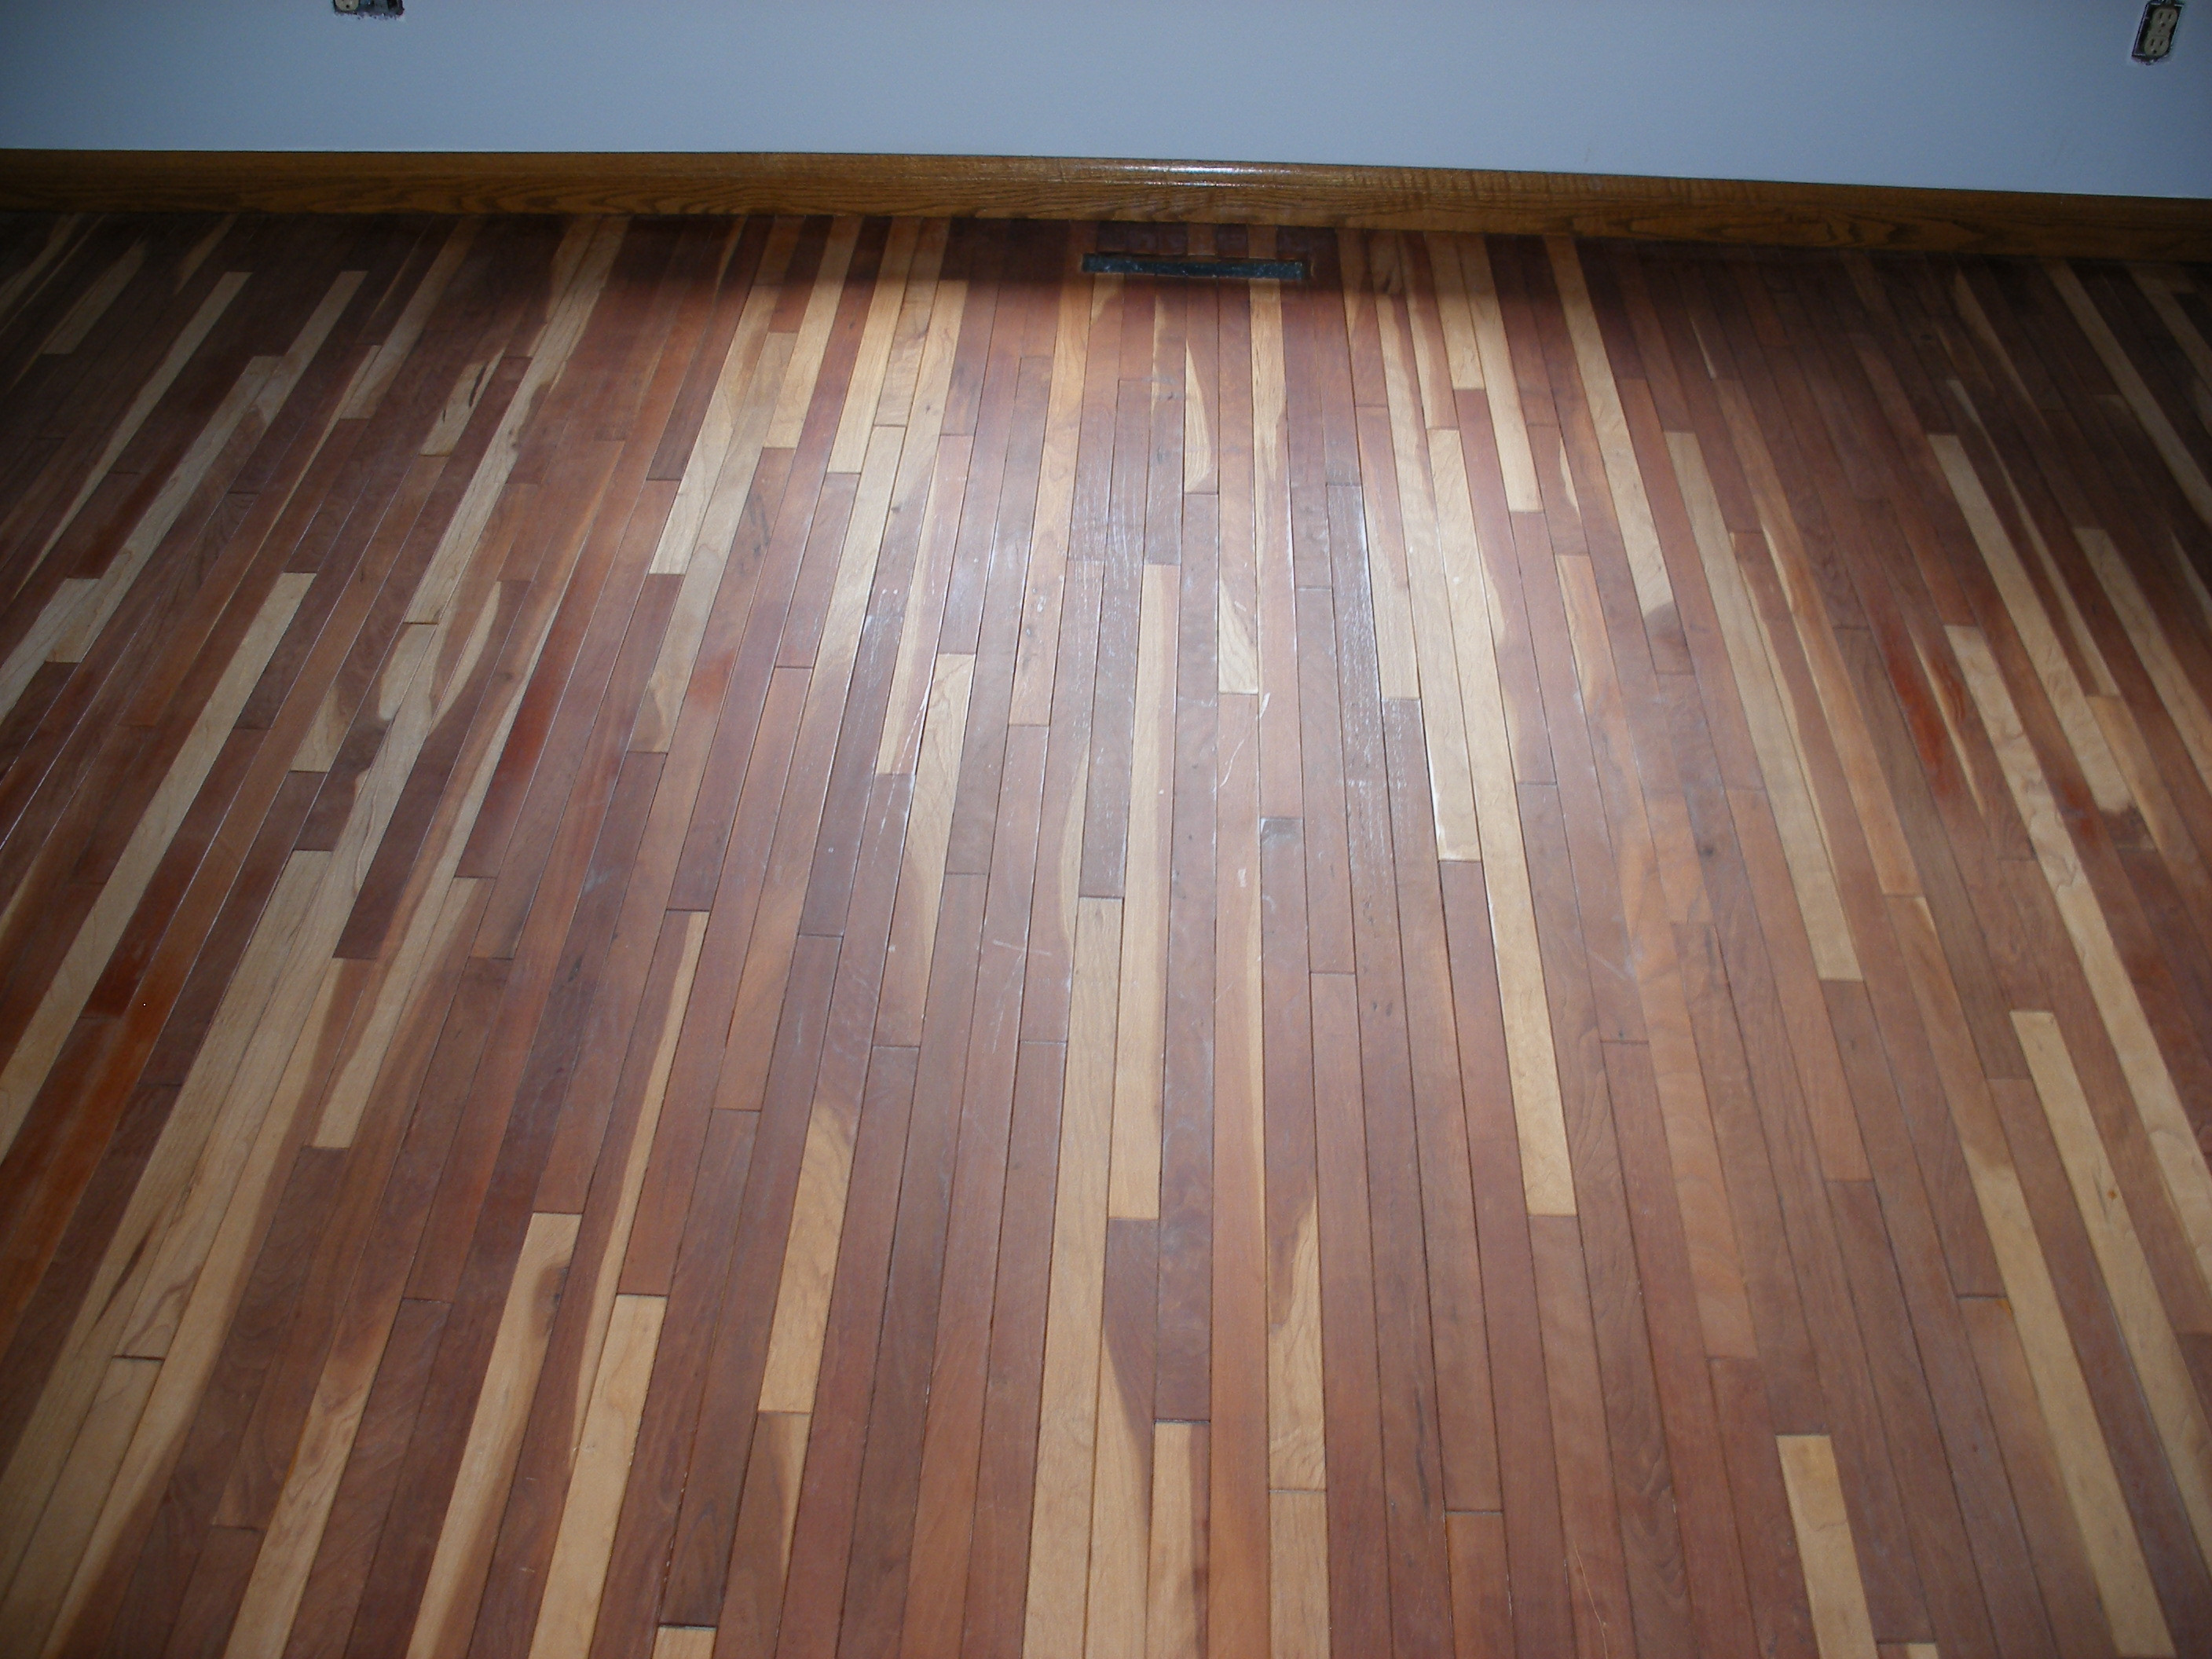 How Much Does Staining Hardwood Floors Cost Of Hardwood Floor Refinishing Chicago Jacobean Stained Fir Wood Floors In Flooring Pinterest Hardwood Floor Refinishing Chicago No Sand Wood Floor Refinishing In northwest Indiana Hardwood Floors